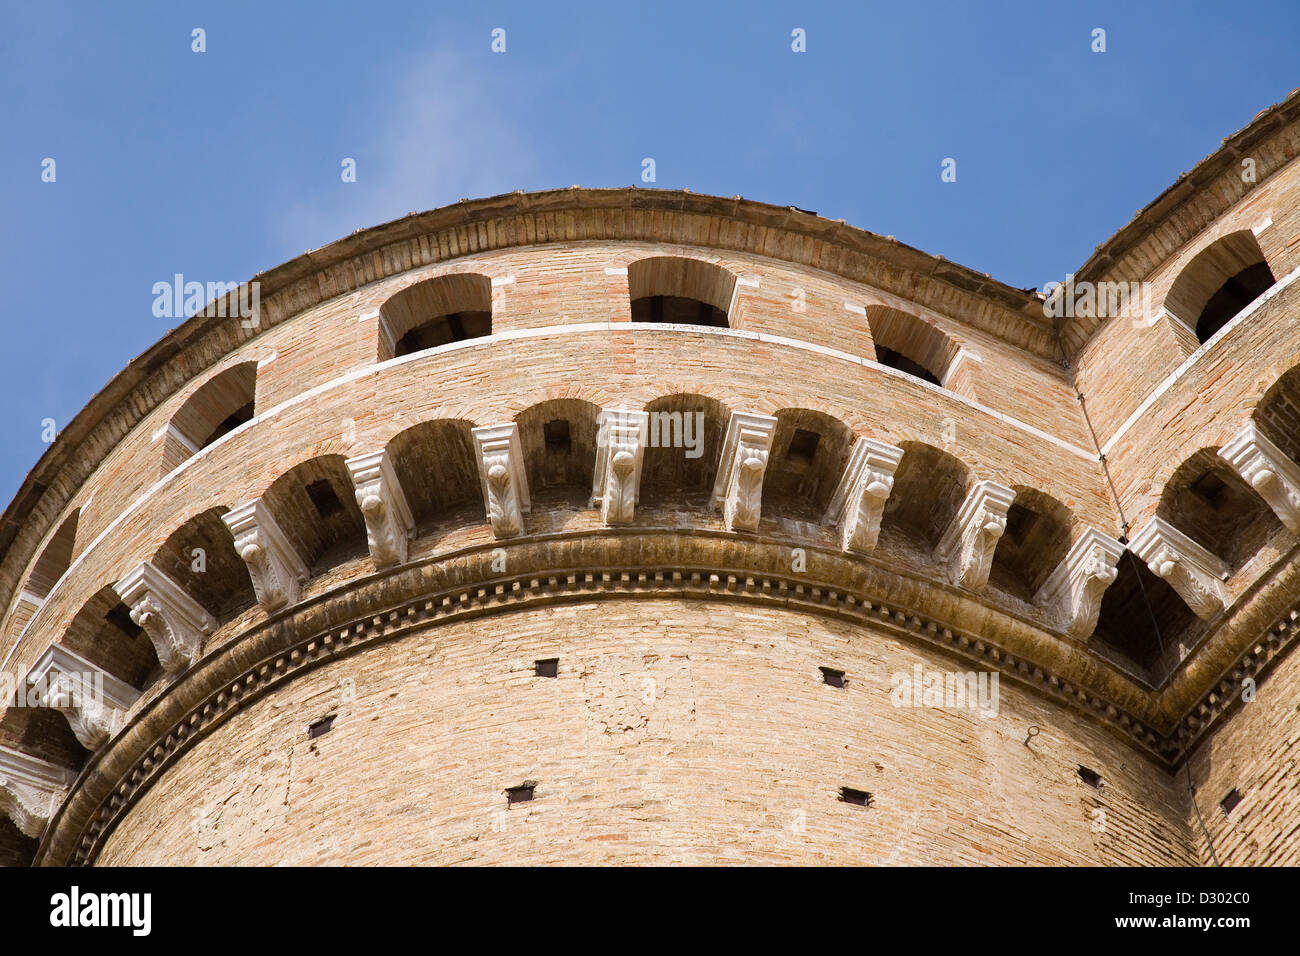 europe, italy, marche, loreto, sanctuary of the holy house, detail - Stock Image